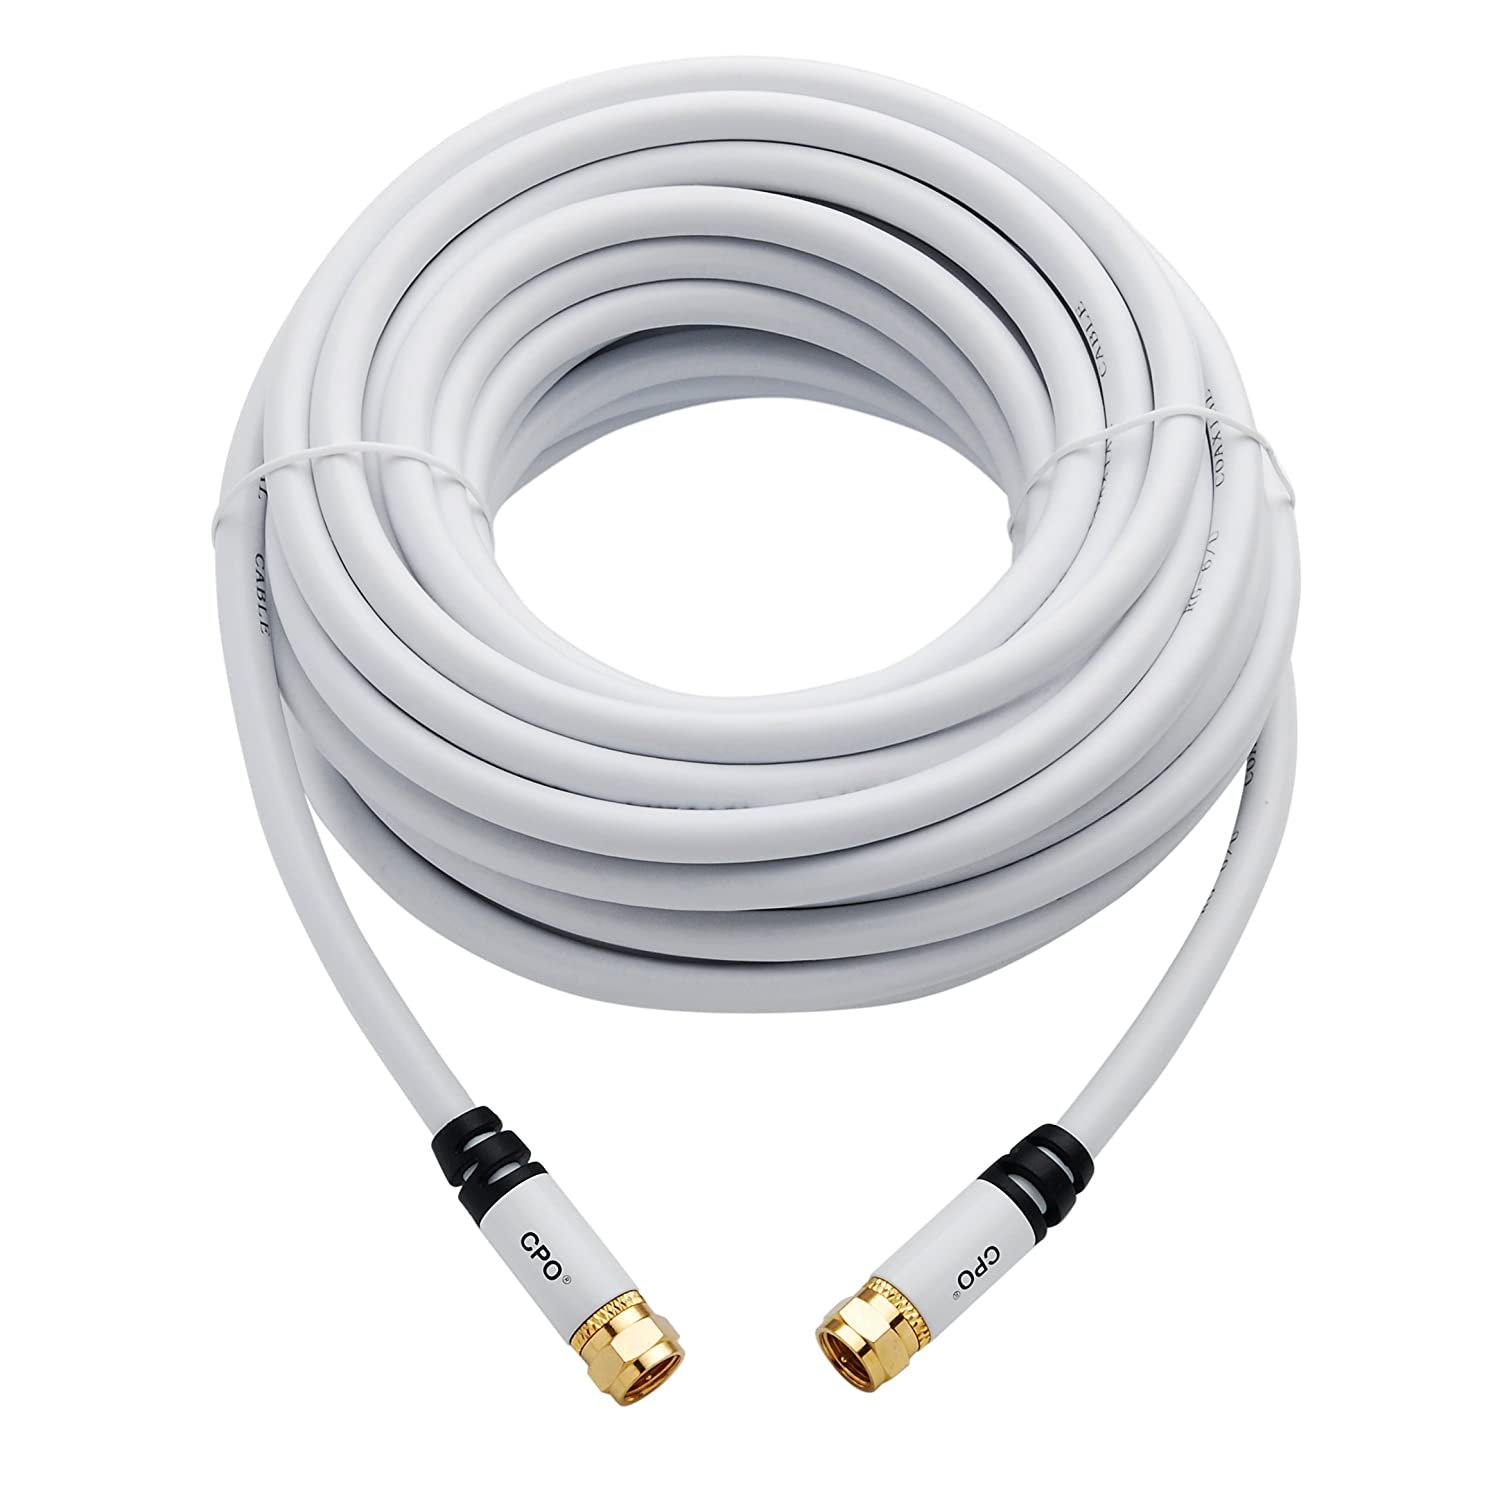 Cpo Rg6 F Type Coaxial Television Cable For Sky Tv Virgin And Freeview Set Top Boxes 1m Junction Box Wiring Bq Electronics